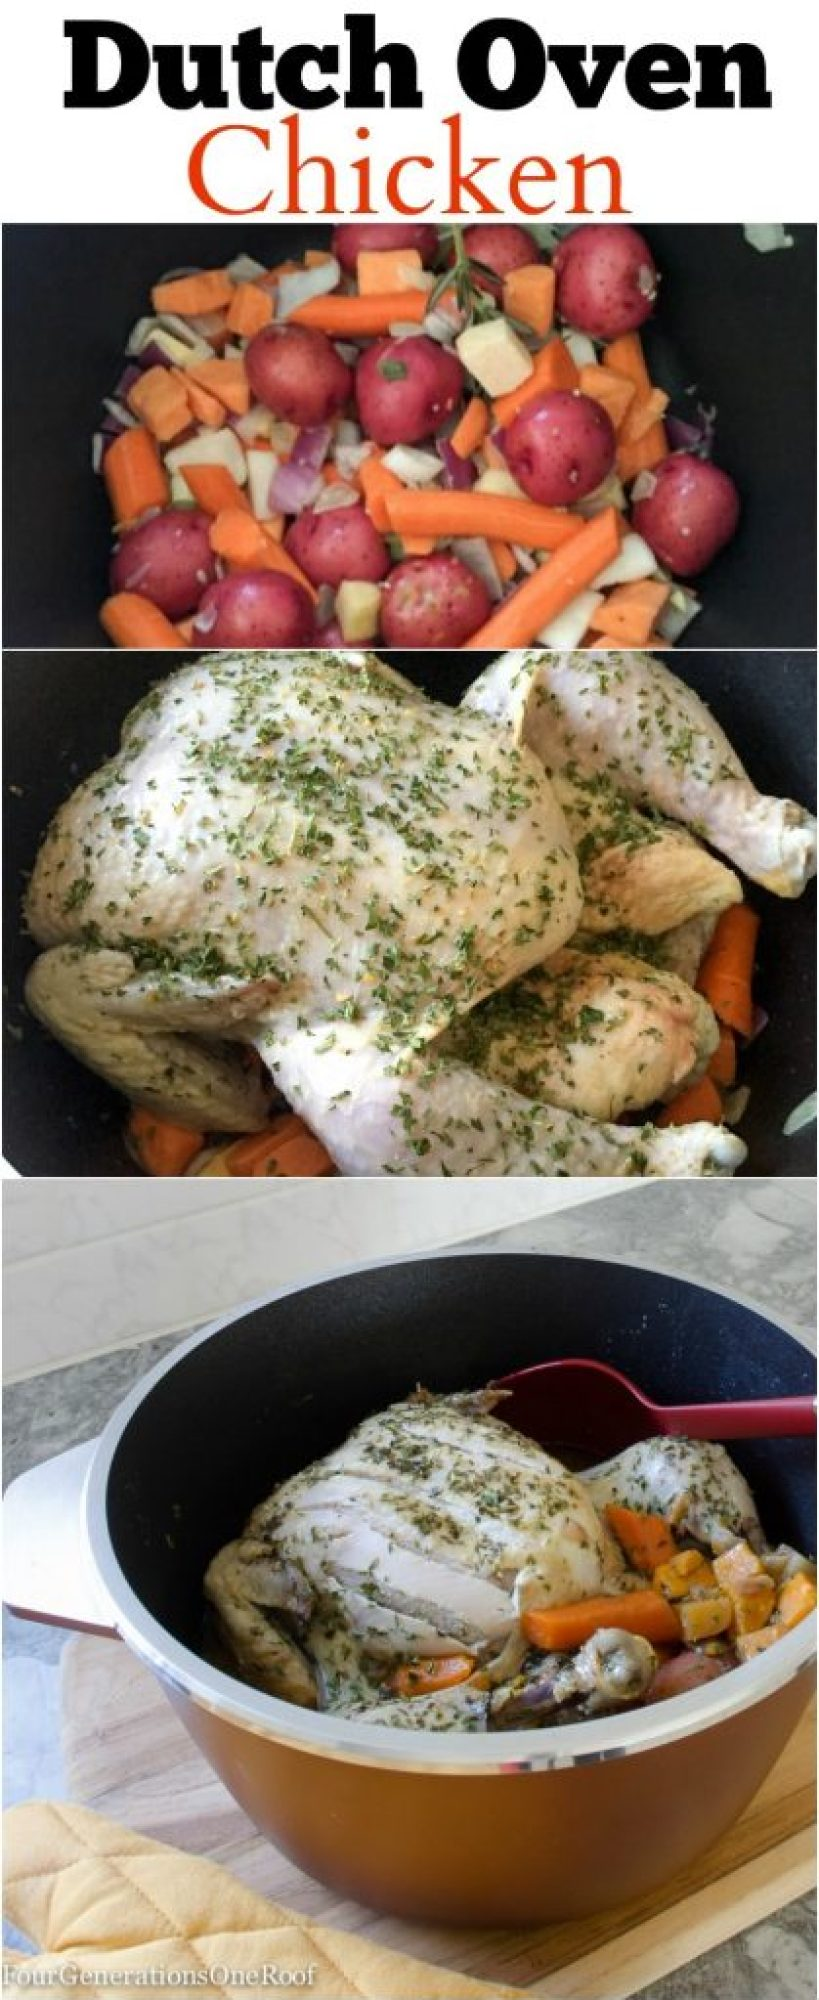 dutch oven chicken / How to cook chicken in a dutch oven